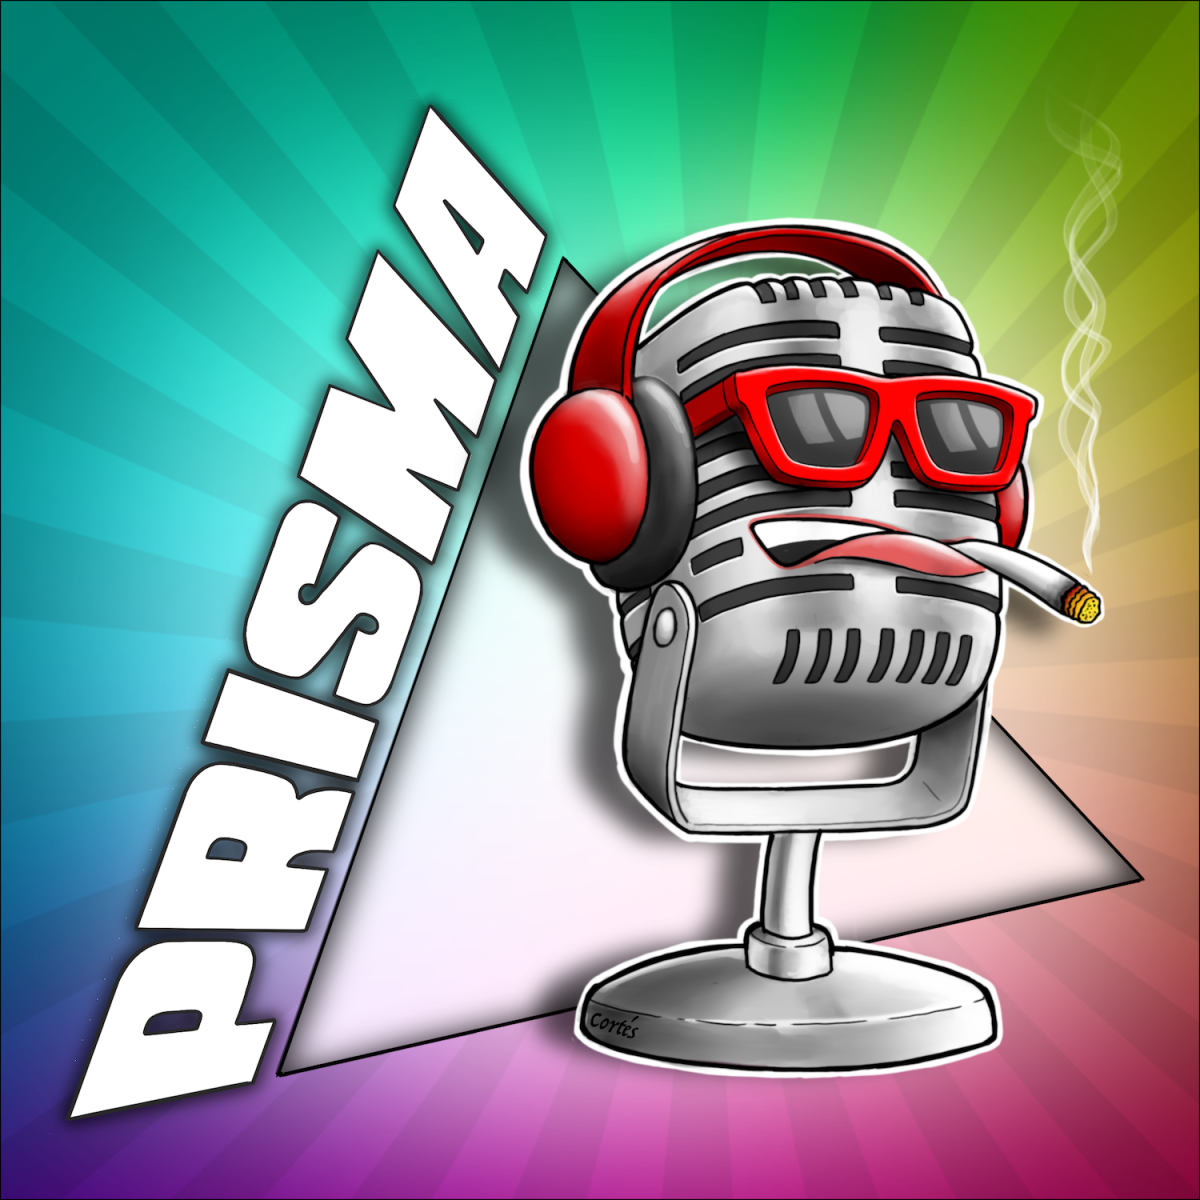 [Prisma Podcast: Deel 6] Over Boxtelse Varkens, Hans Brusselmans en de Europalezing